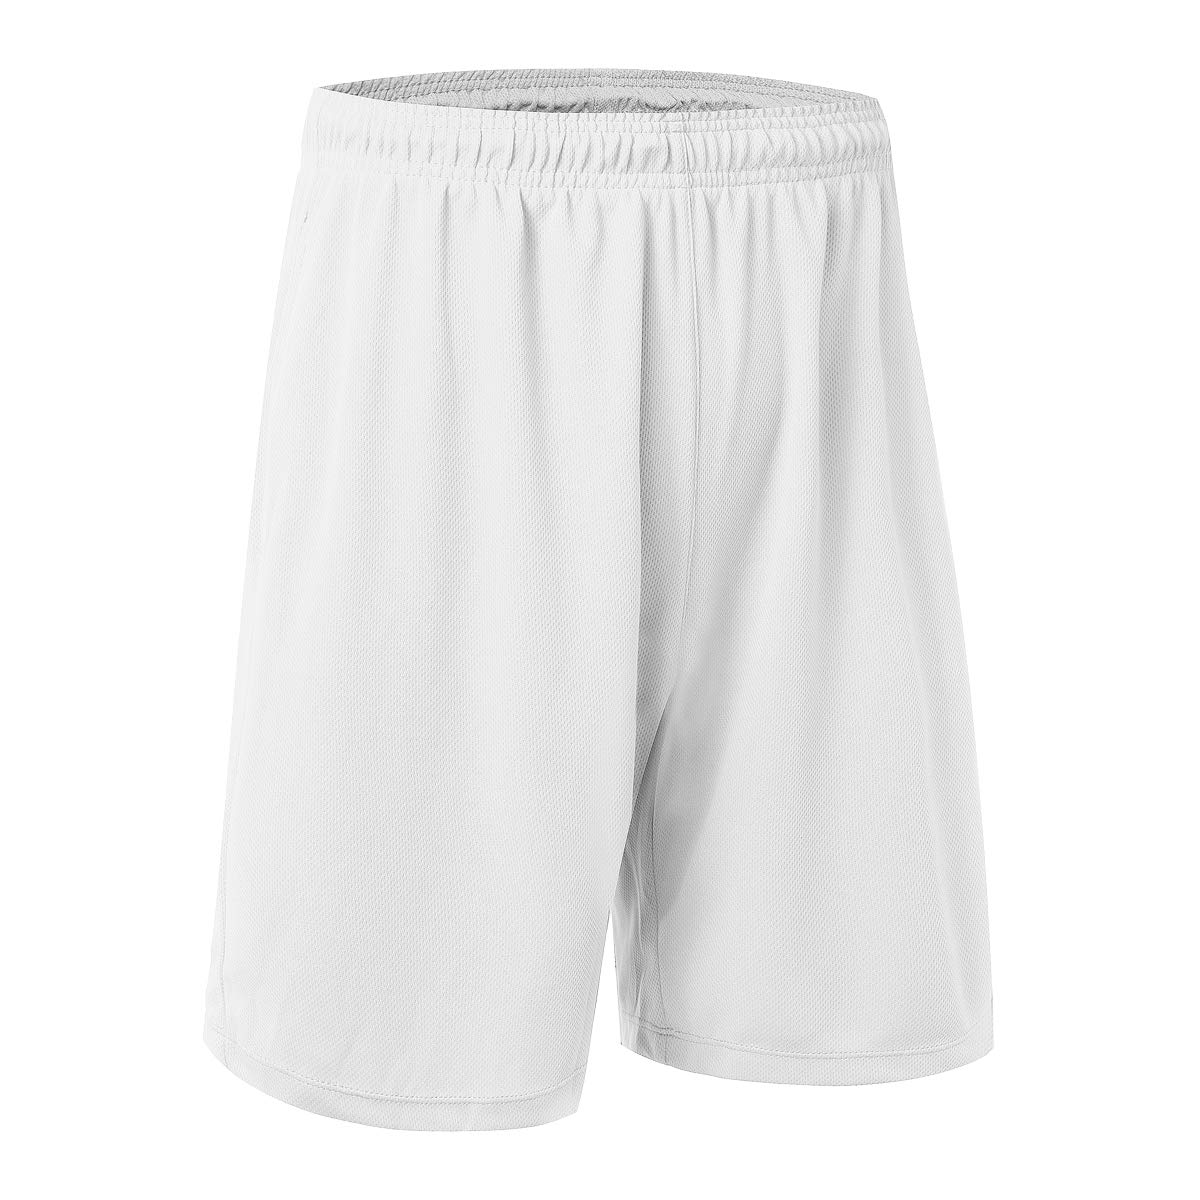 icooltech Mens Sports Shorts Running Basketball Pants Fitness Loose Training Five Pants